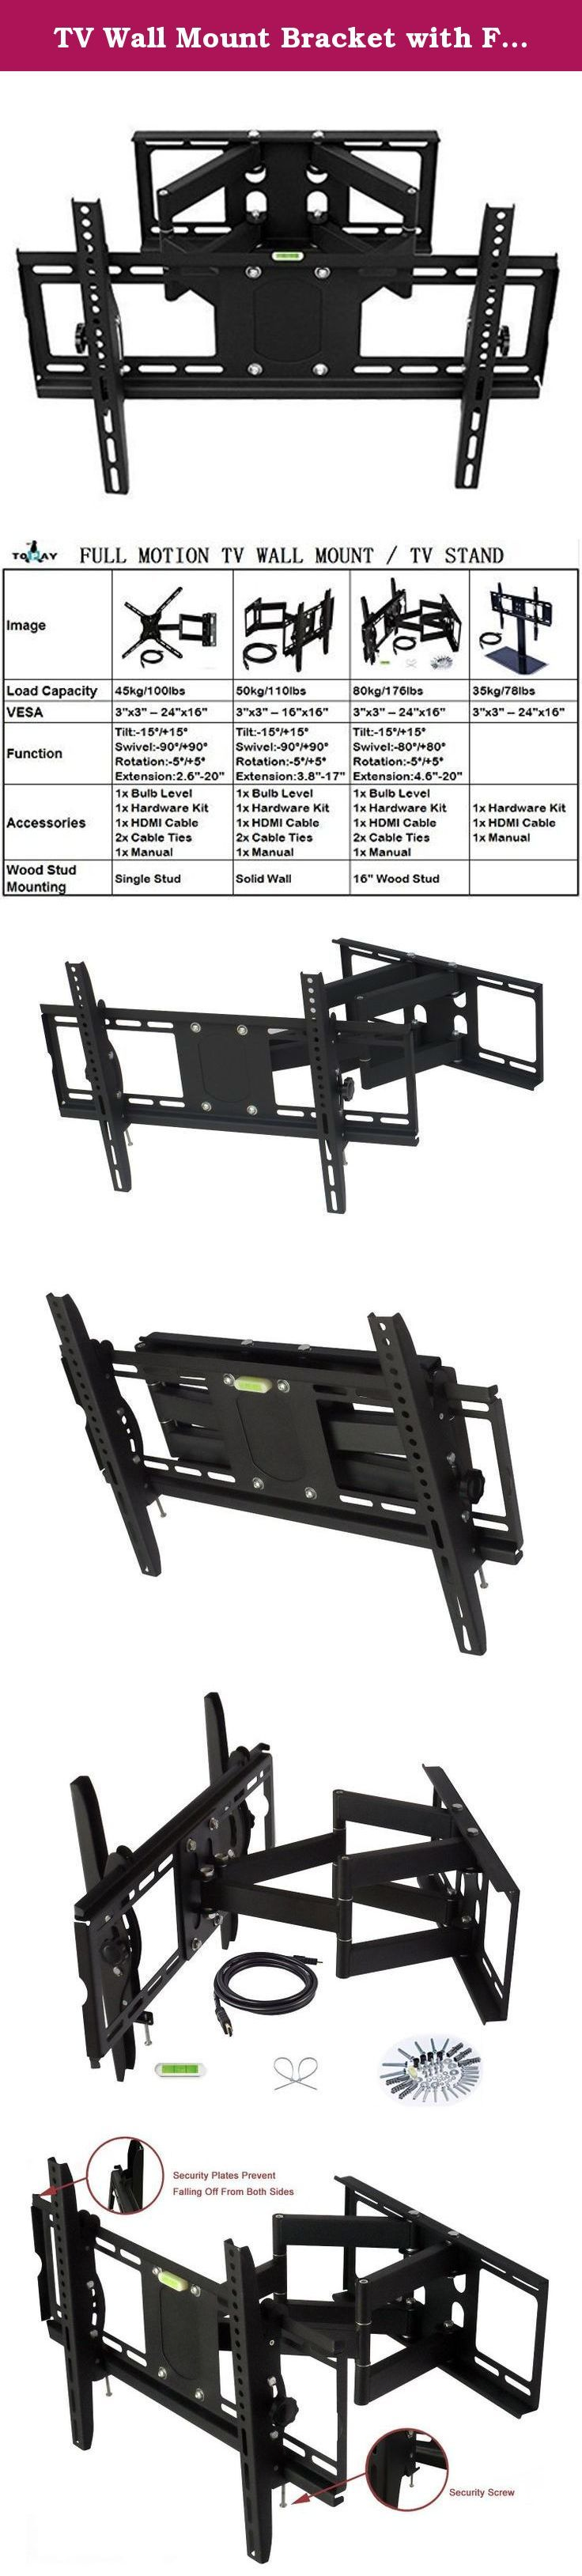 TV Wall Mount Bracket with Full Motion Dual Articulating Arm and Tilt, Swivel Adjustment for most of 32-75 Inches LED, LCD Plasma TVs. Before bidding the item, please check whether the TV Wall Mount is suitable for your TV. ★★★ Make sure the wall installed TV bracket is firmness and tightness, such as concrete wall, solid wood wall, do not install in hollow and floppy walls. ★★★ Please check the weight of your TV; it should be less than 176 lbs/80kg. ★★★ Look at the back of your TV, find…